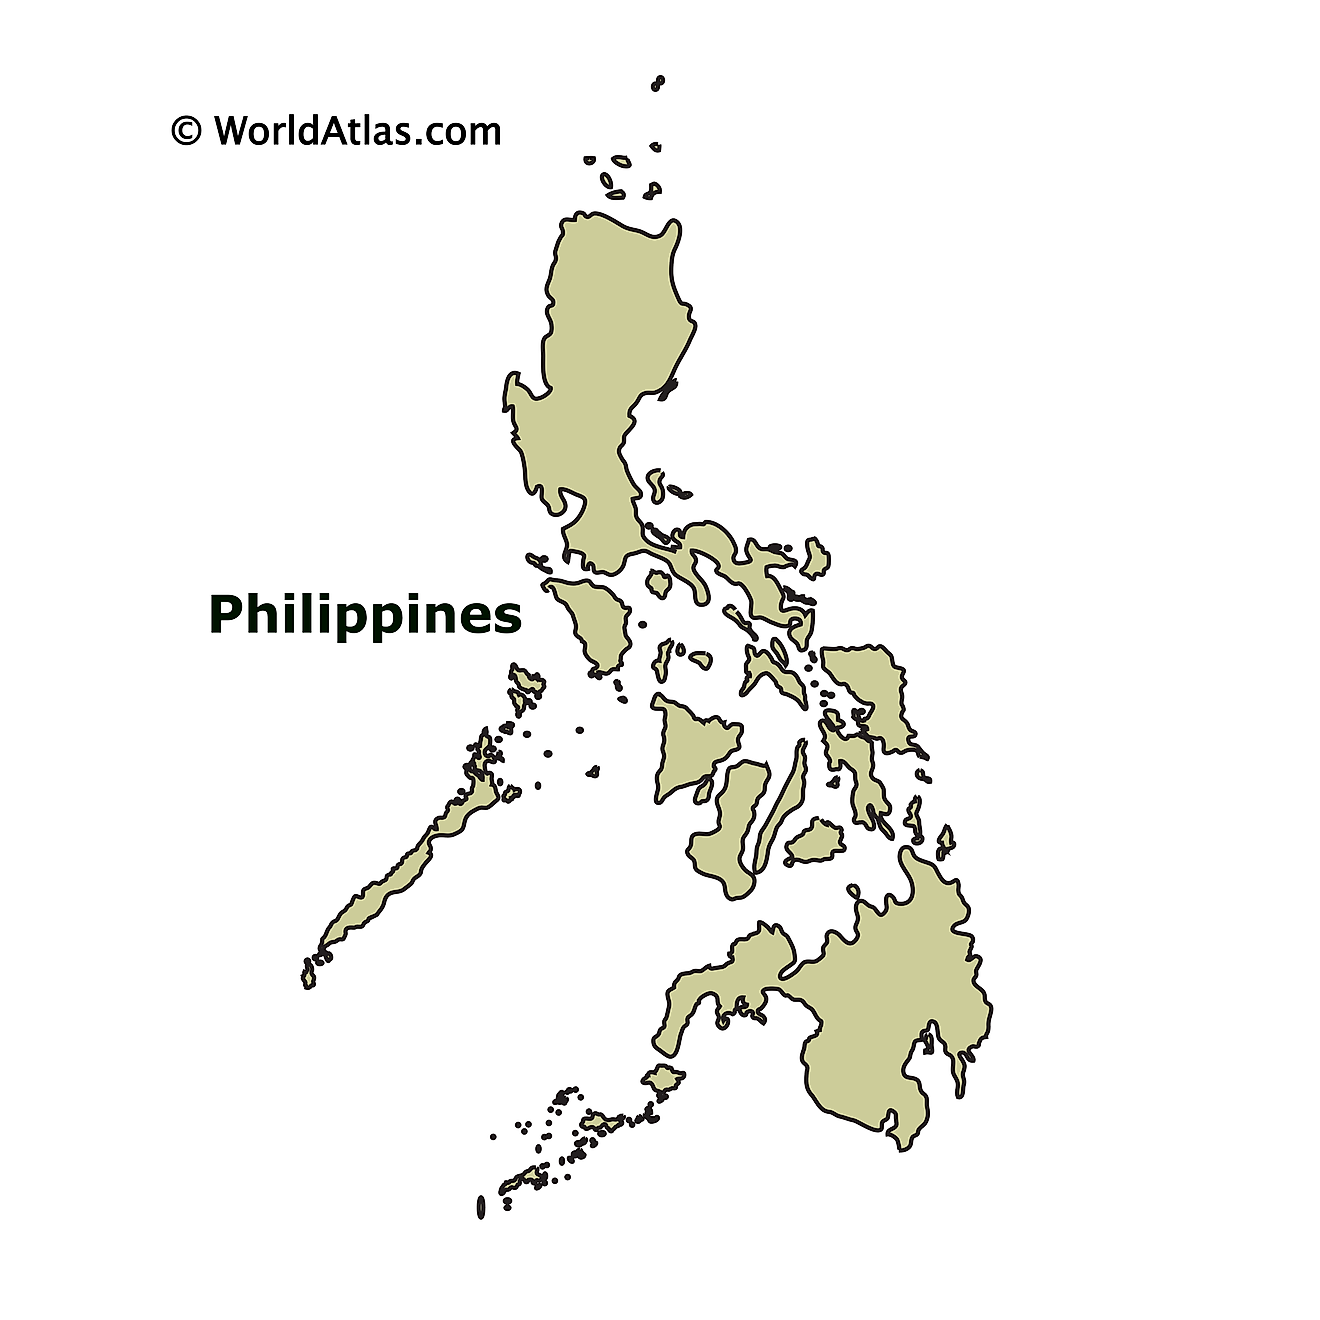 Outline Map of Philippines